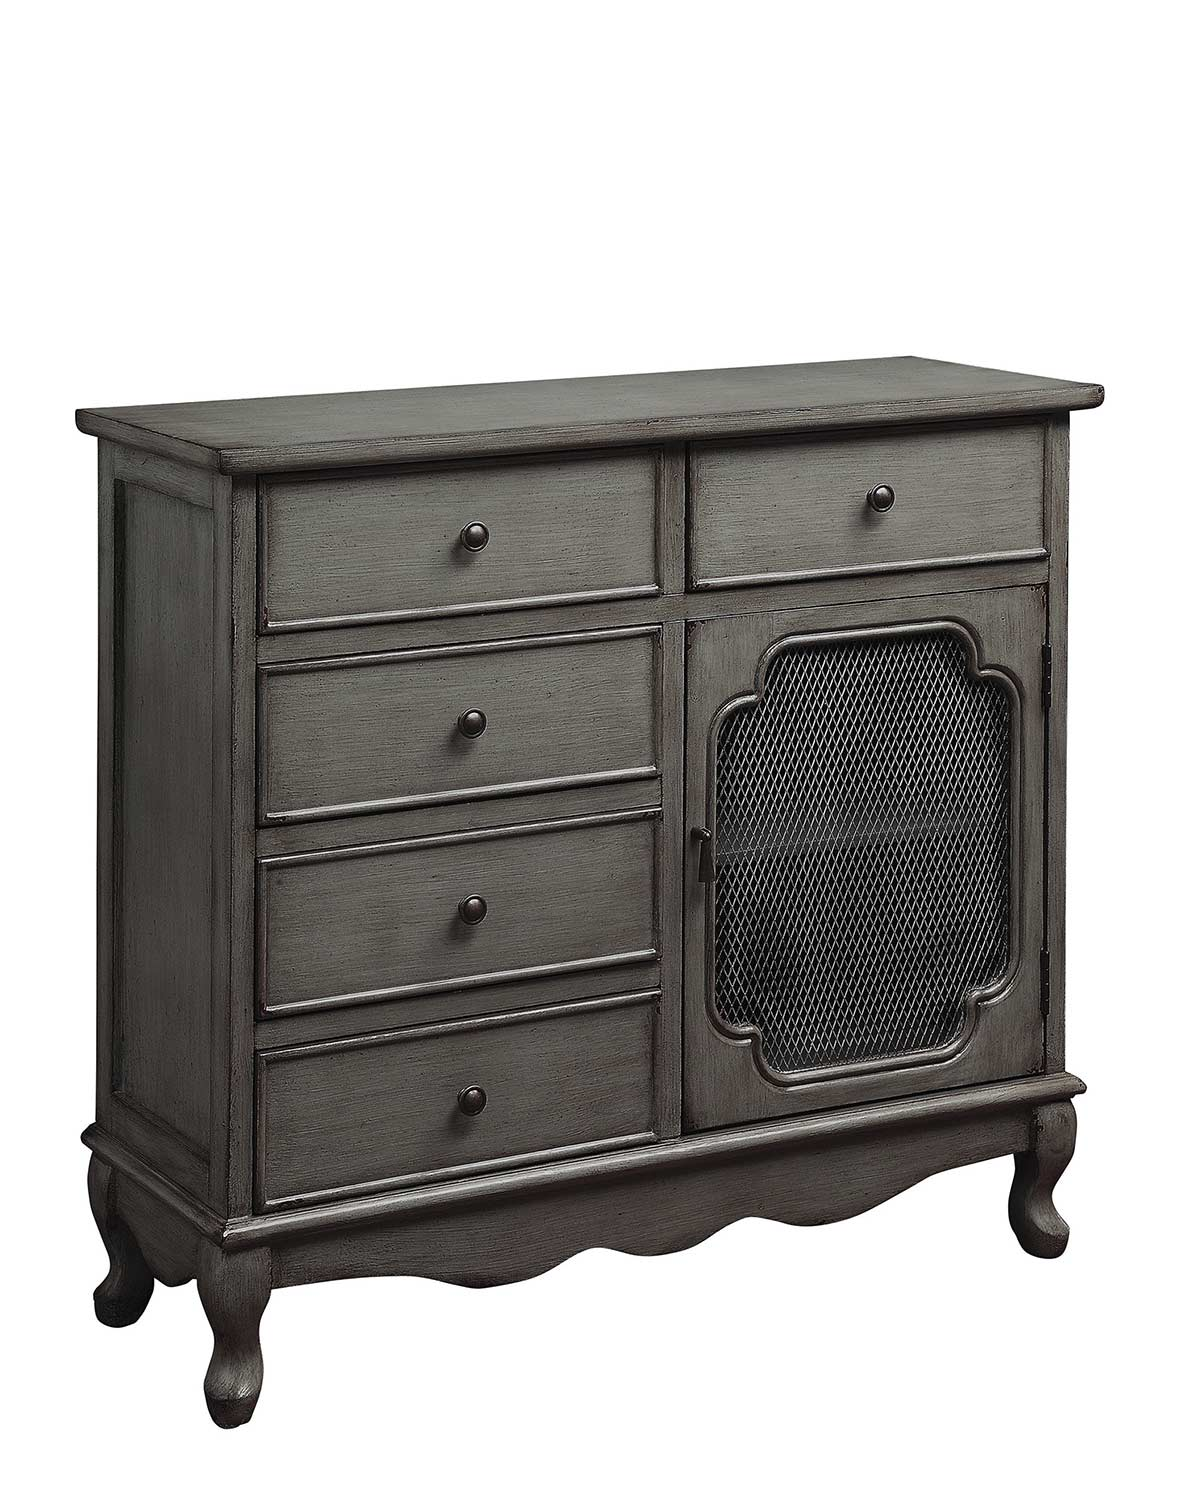 Ordinaire Coaster 950630 Accent Cabinet   Distressed Grey